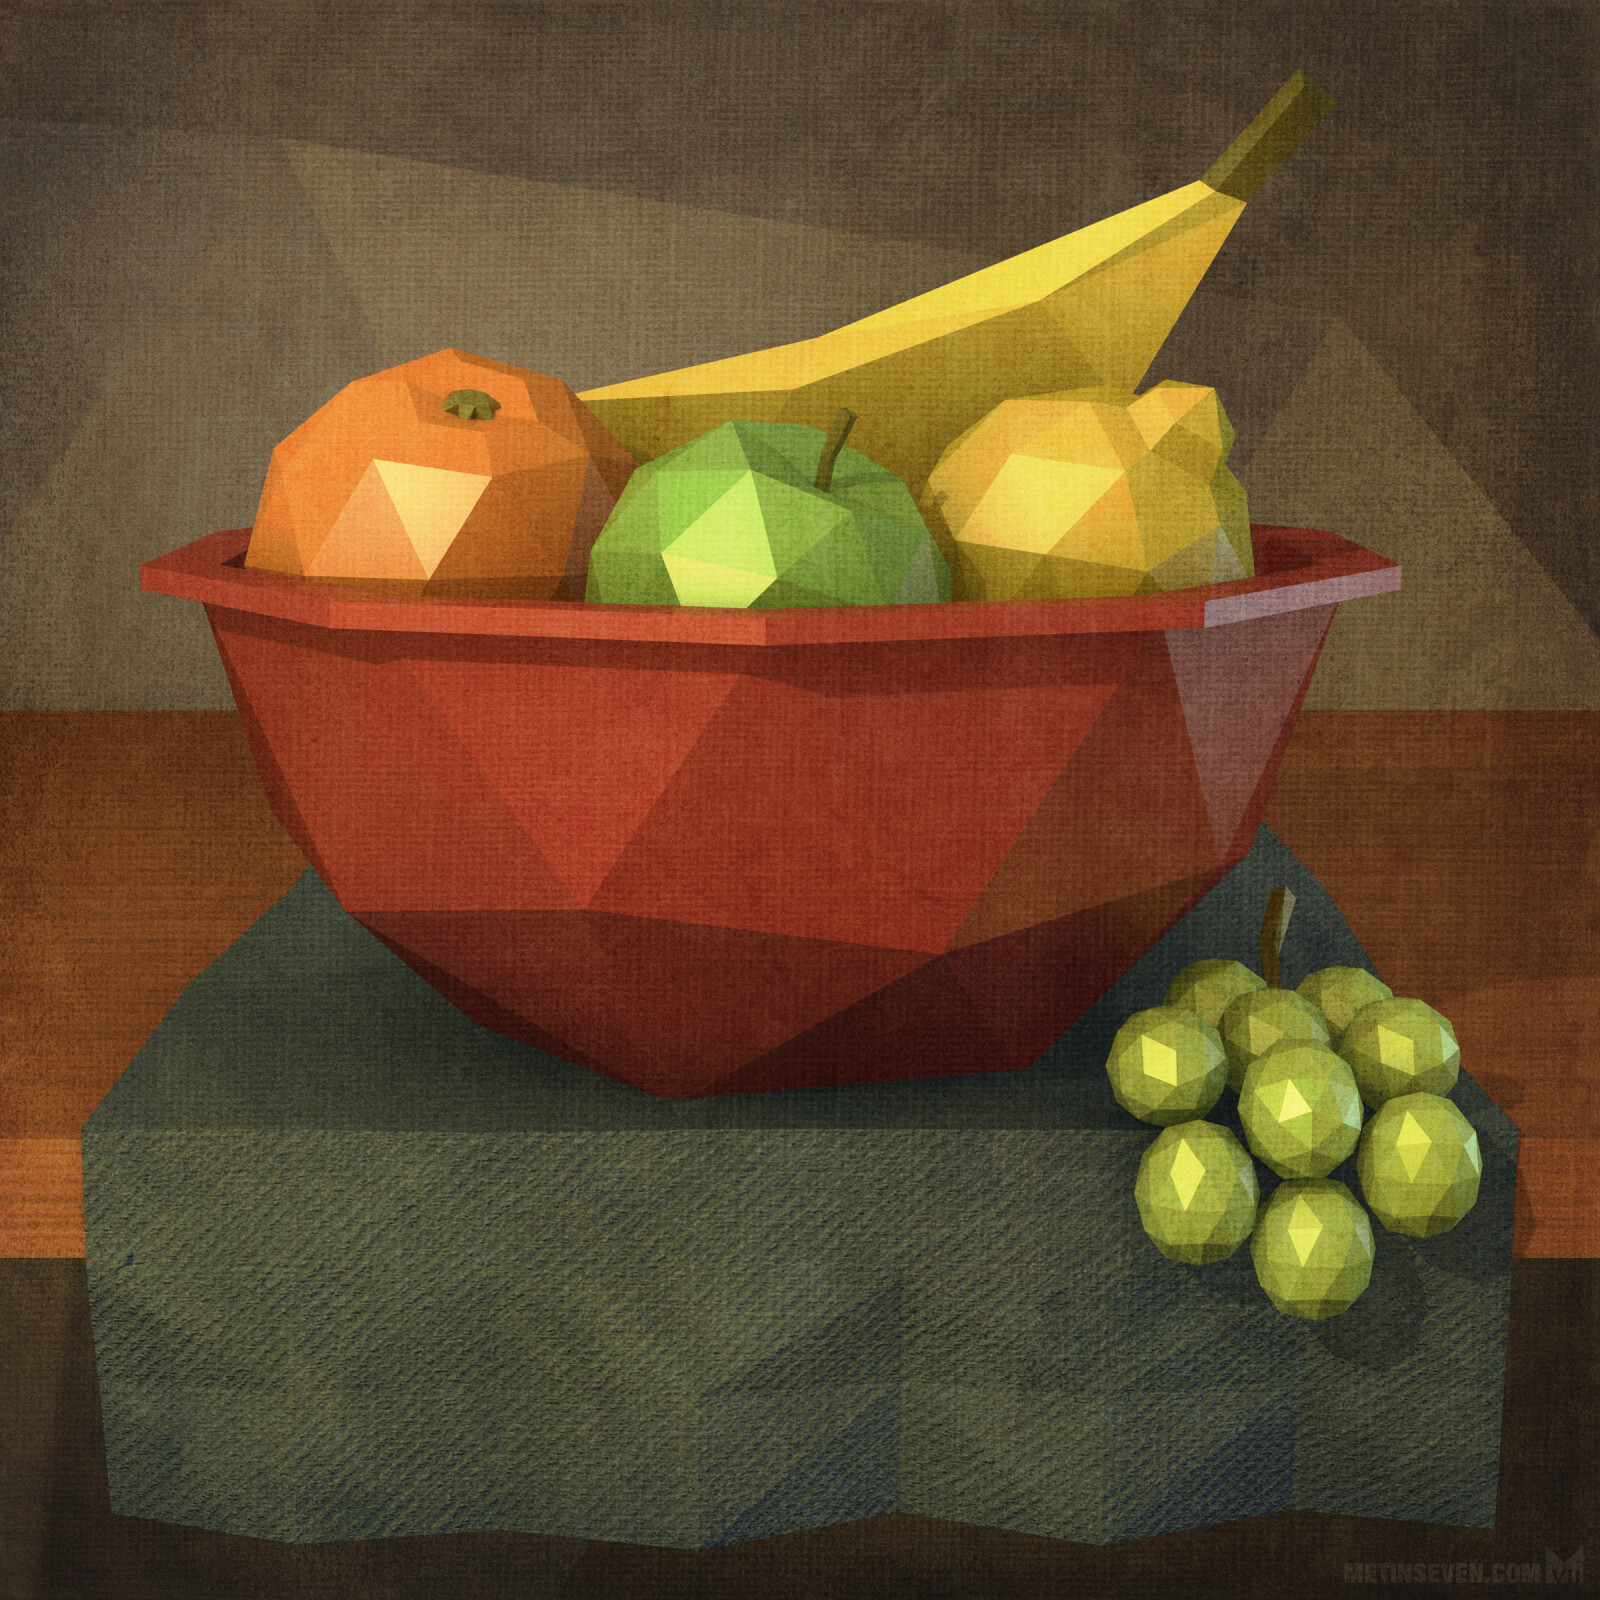 Low-poly still life